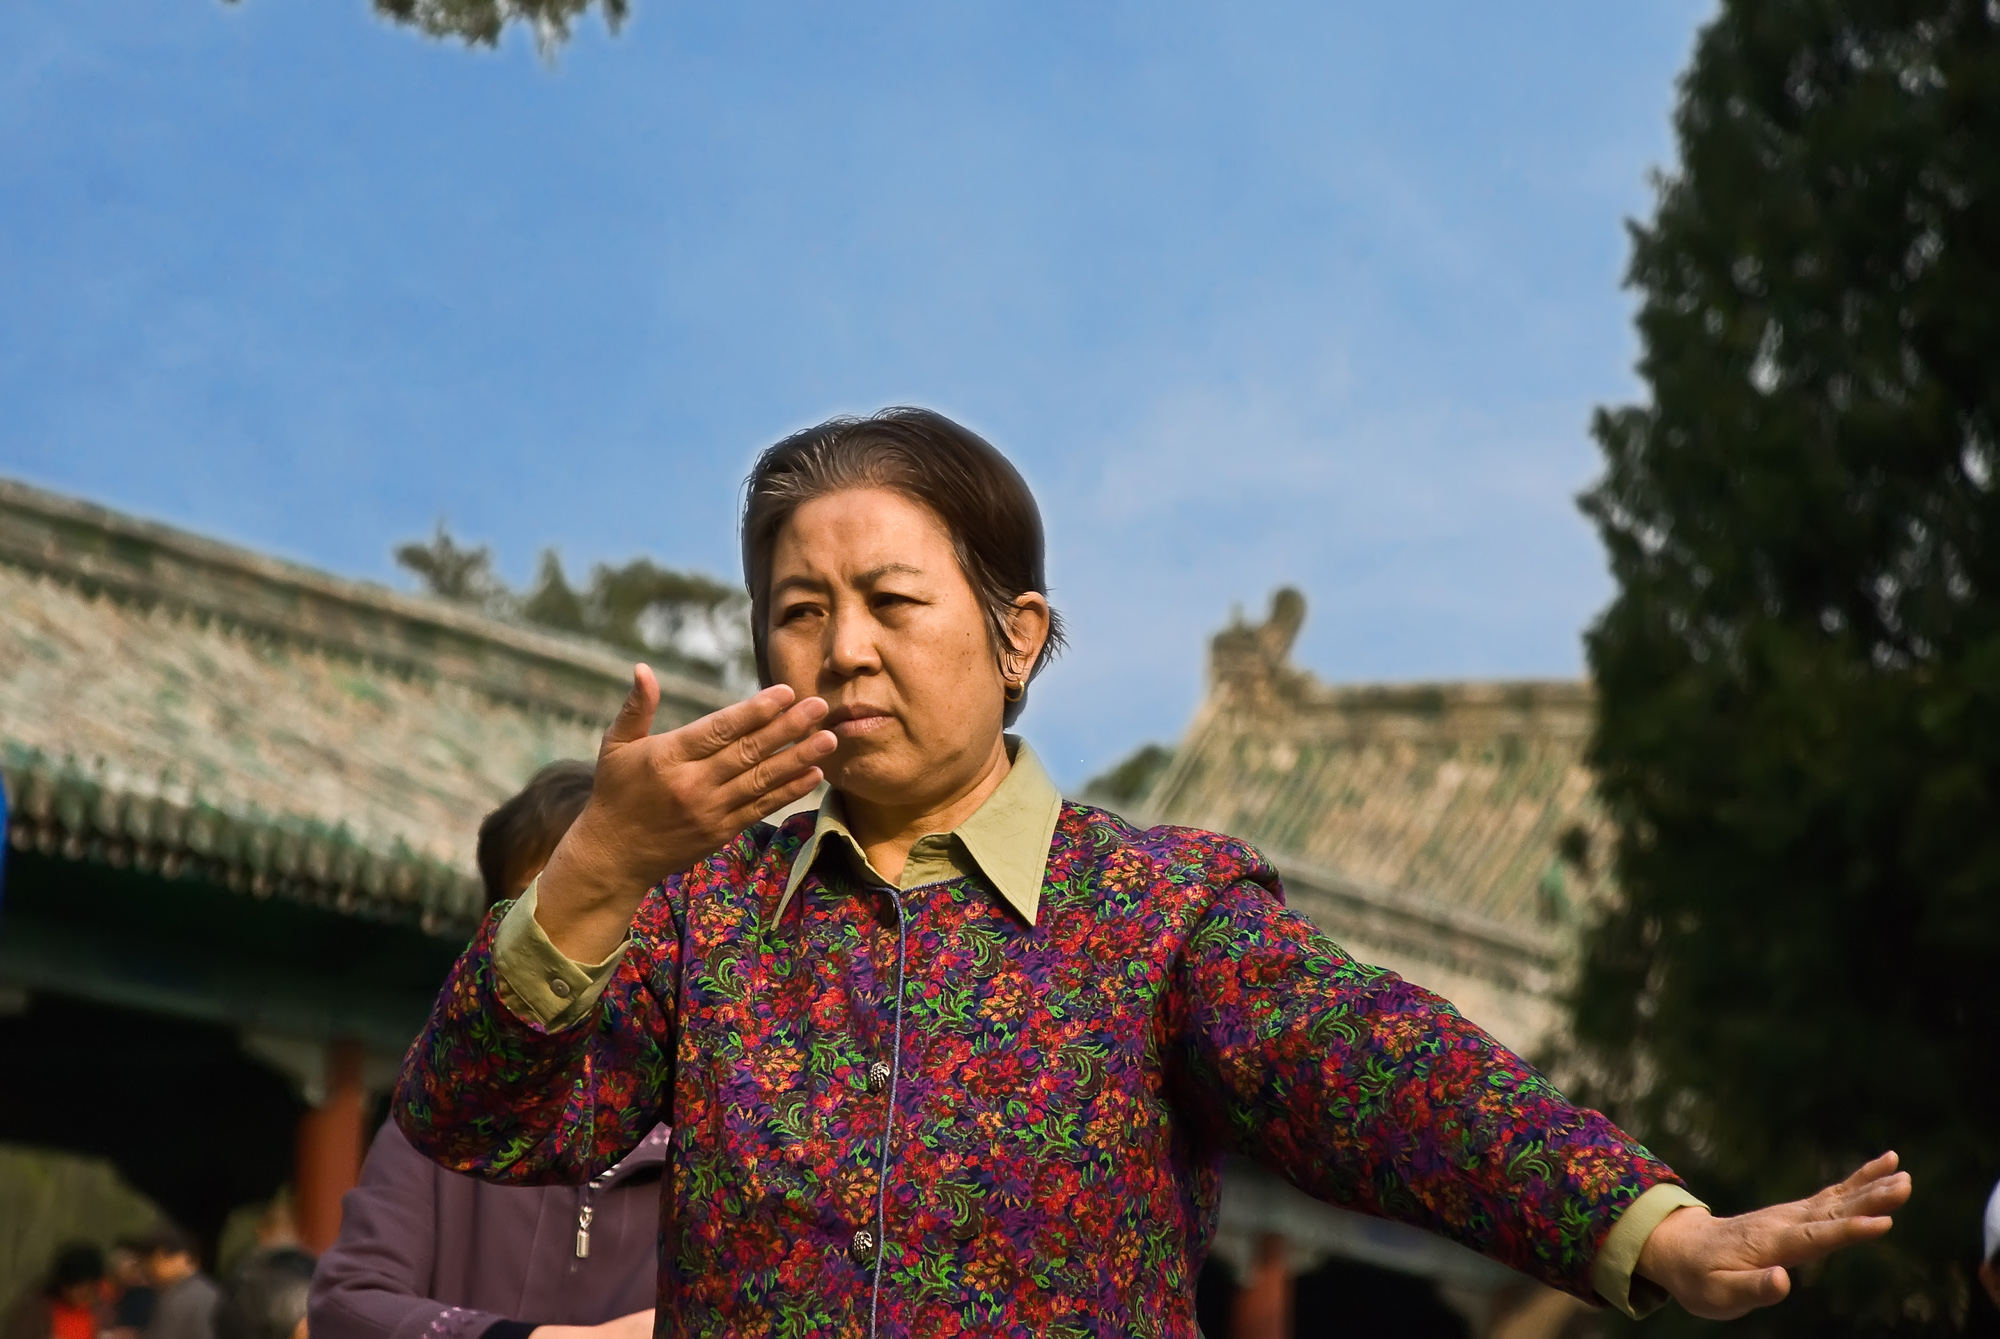 Woman in floral shirt doing Tai Chi